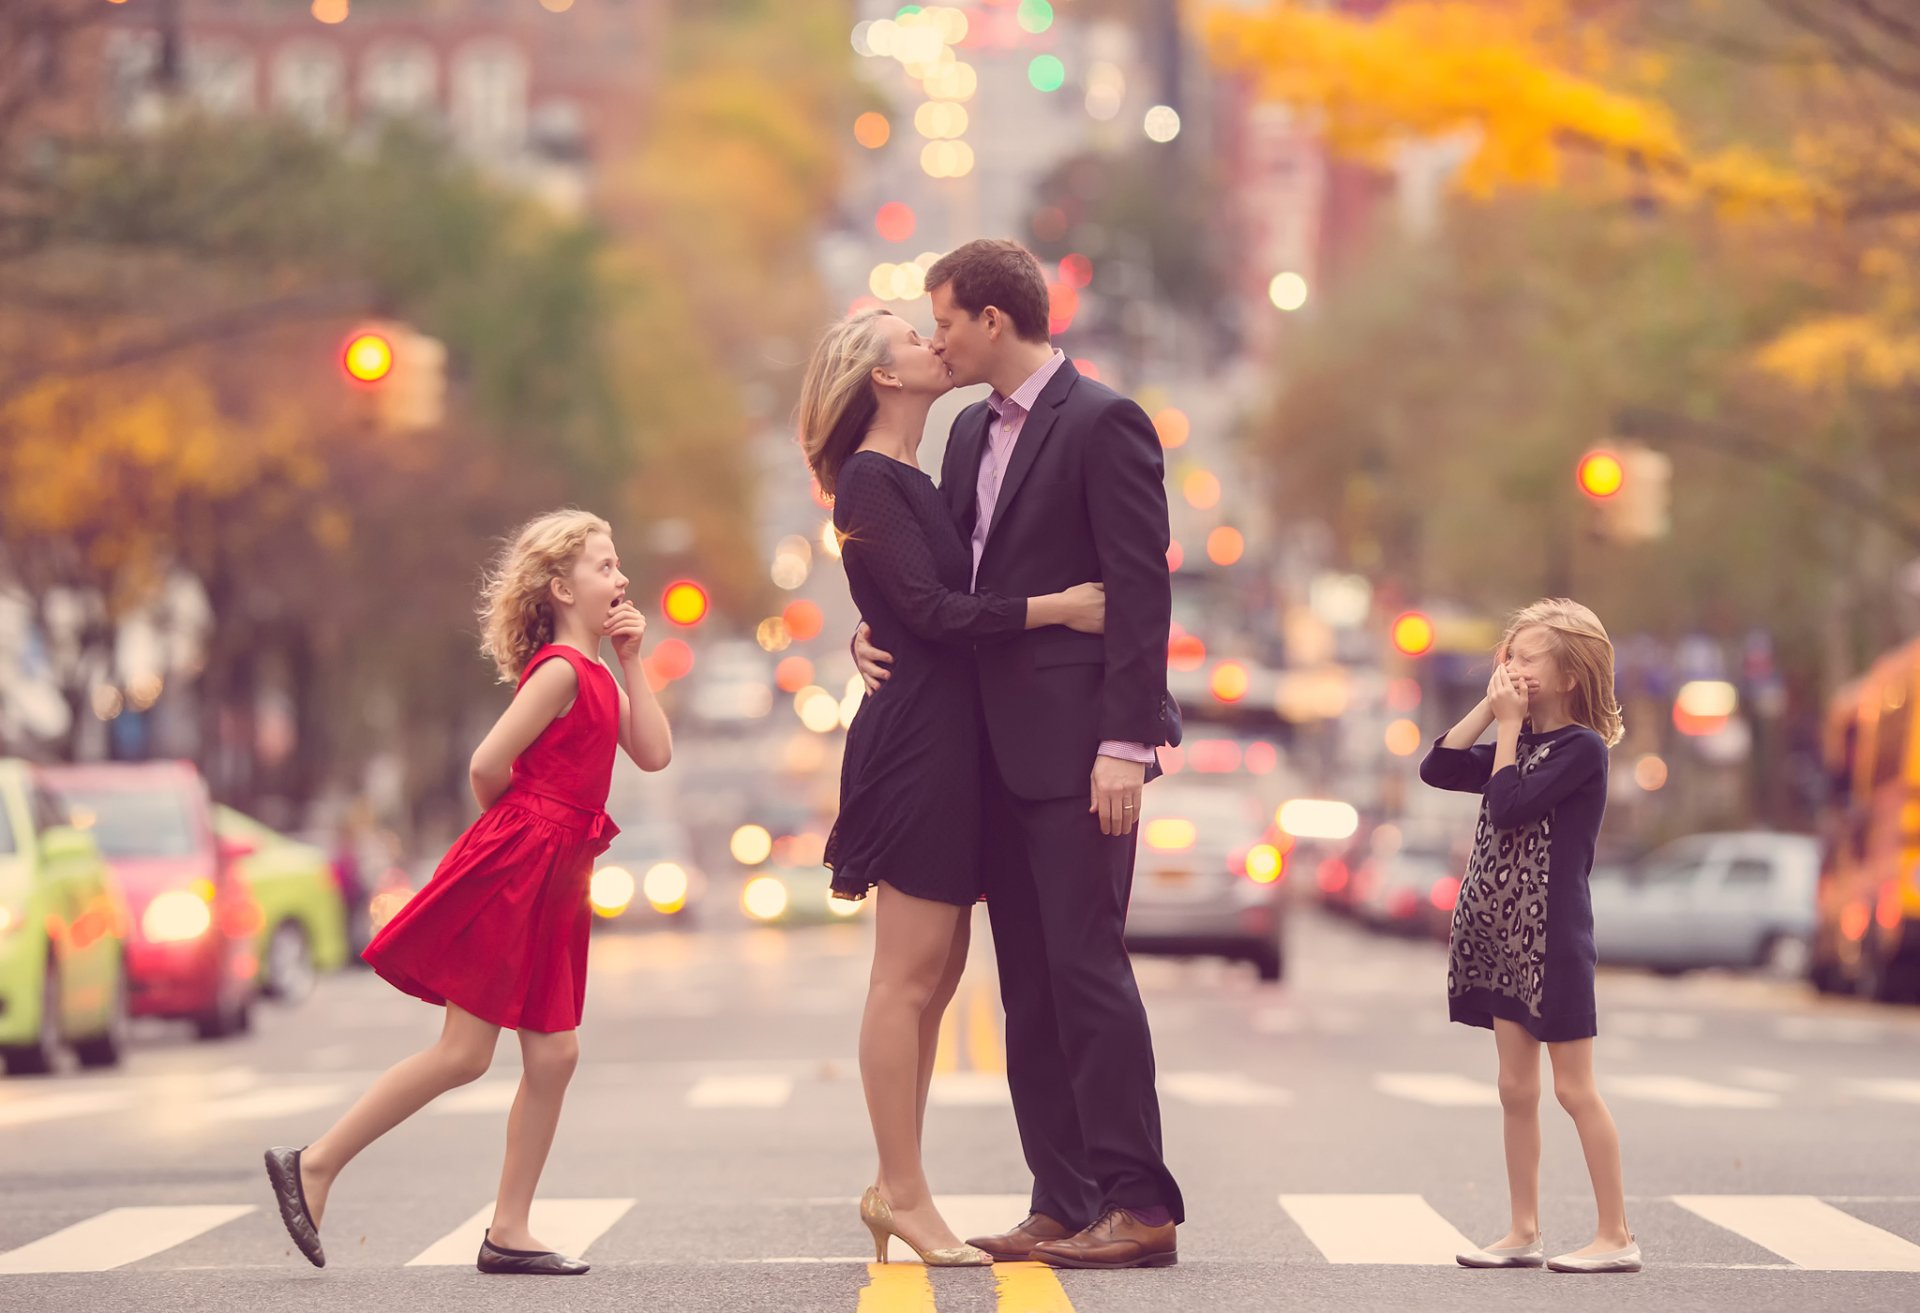 Photography - Love  Kiss Couple Child Street Wallpaper